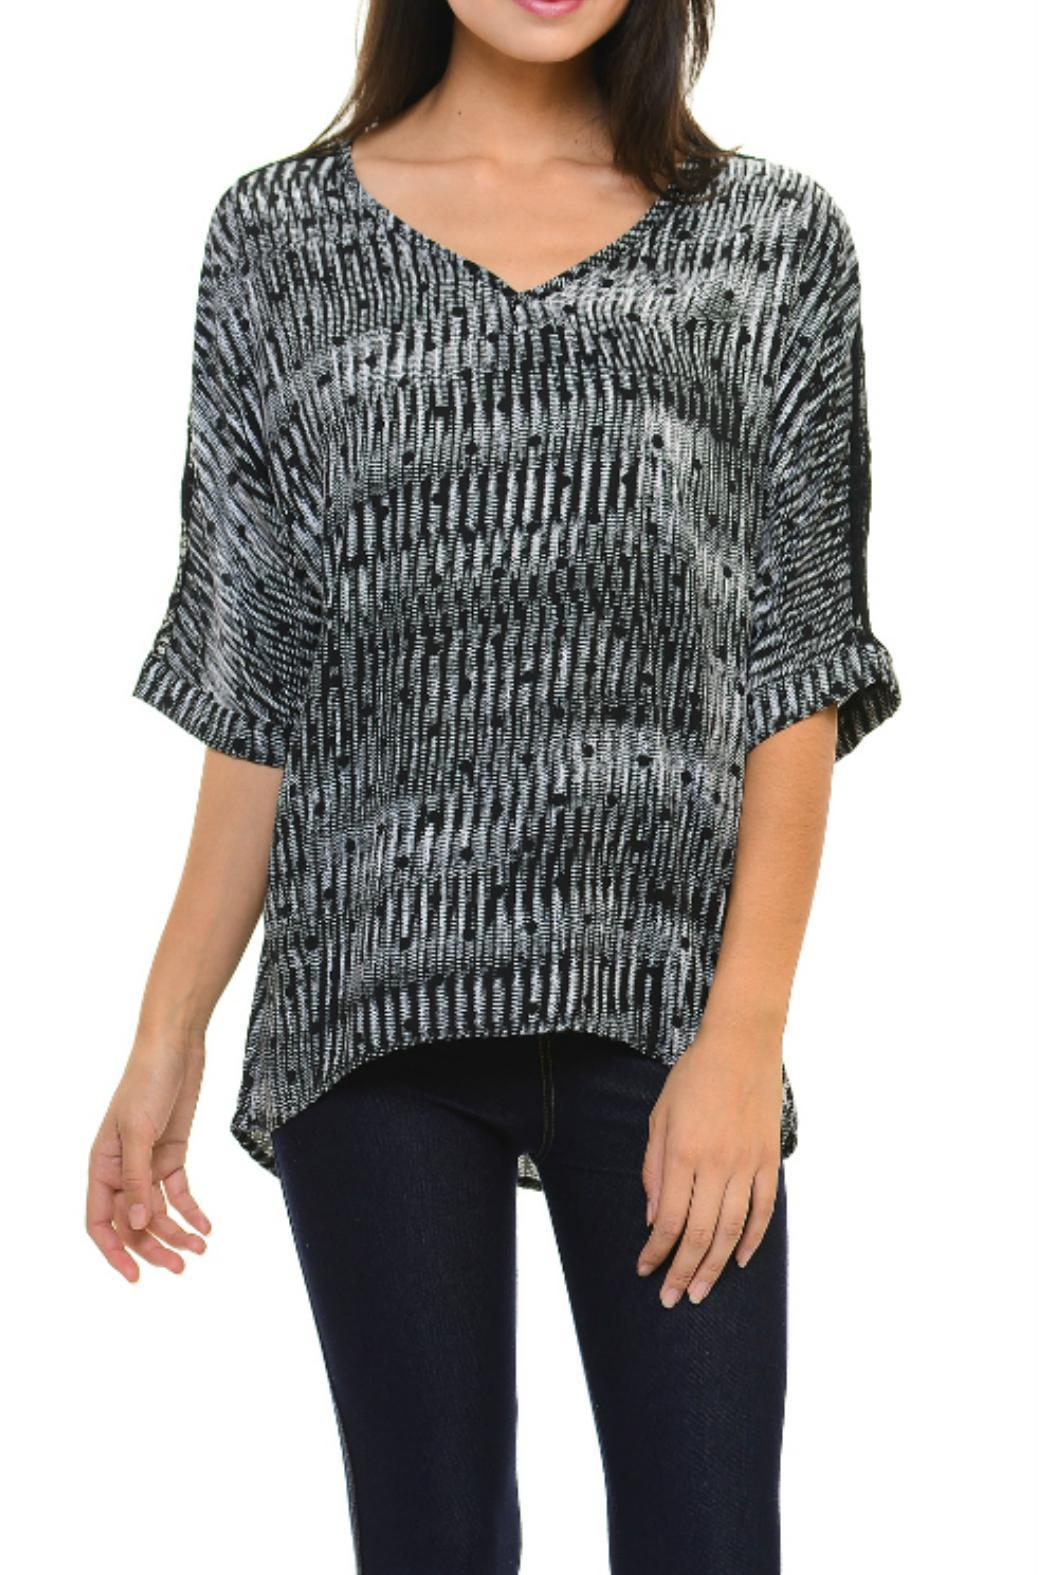 Cubism Black Boxy Top - Side Cropped Image